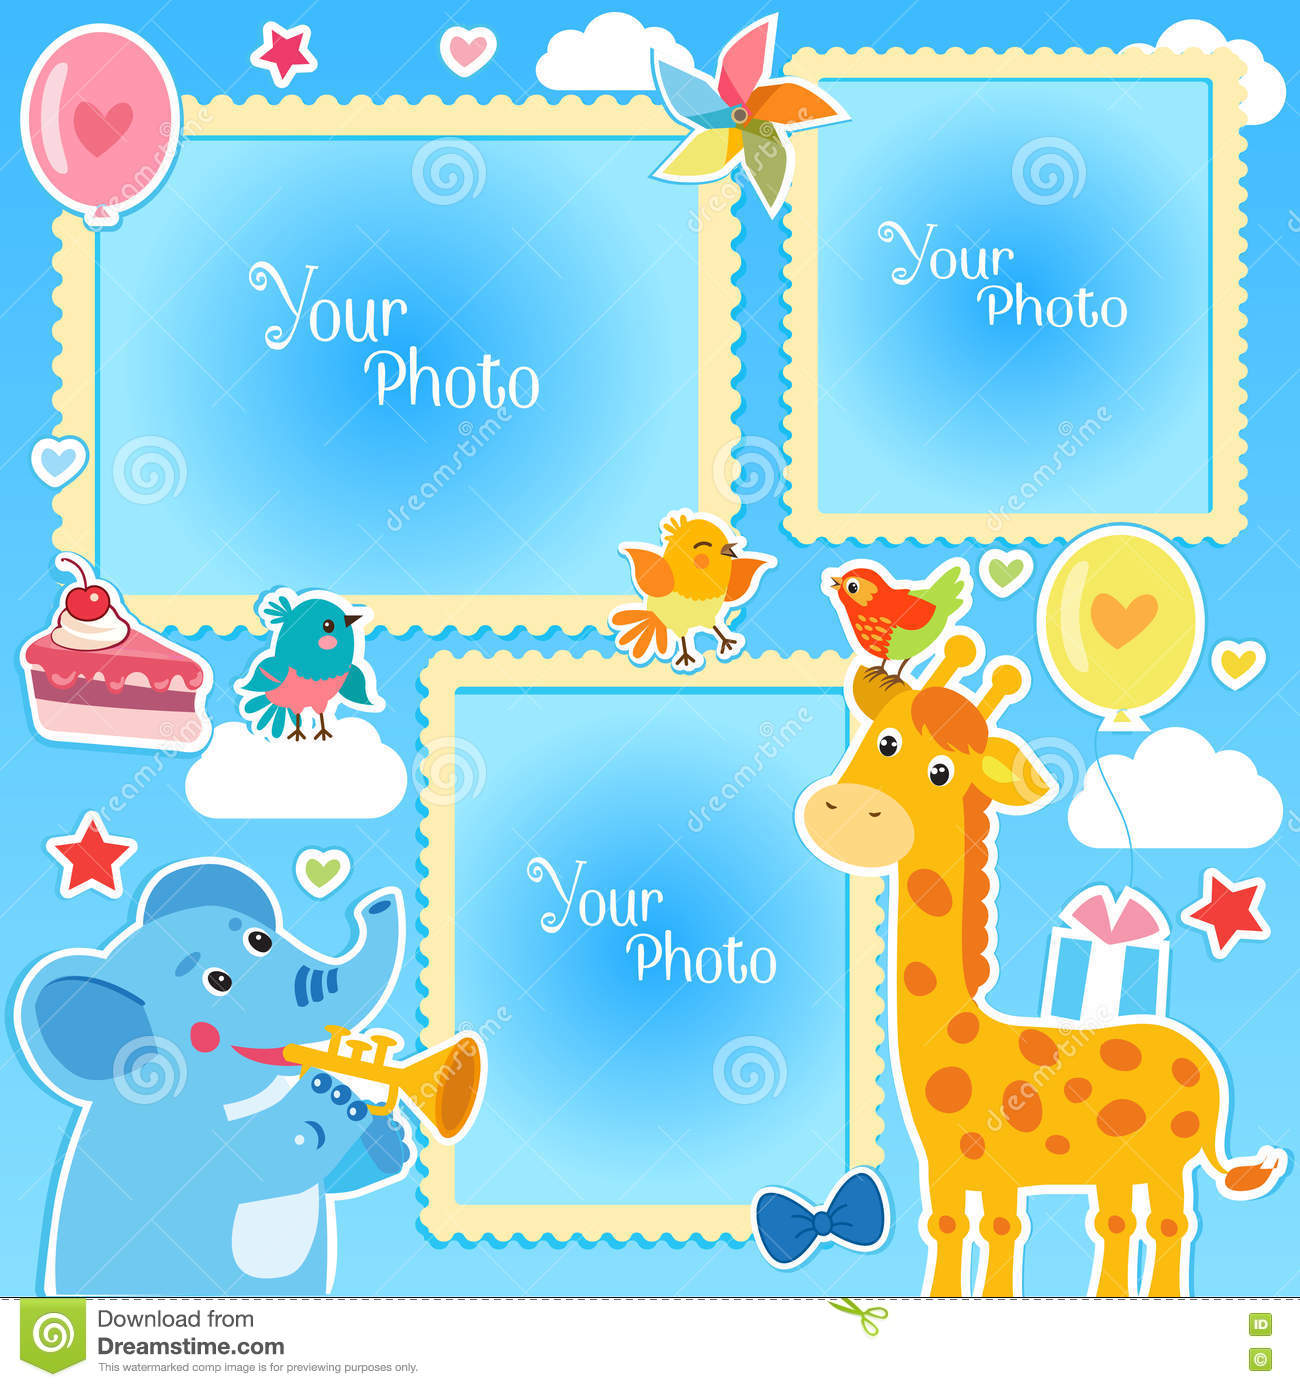 Photo frames collage photo frames making at home birthday photo photo frames collage photo frames making at home birthday photo frames with giraffe and elephant maxwellsz